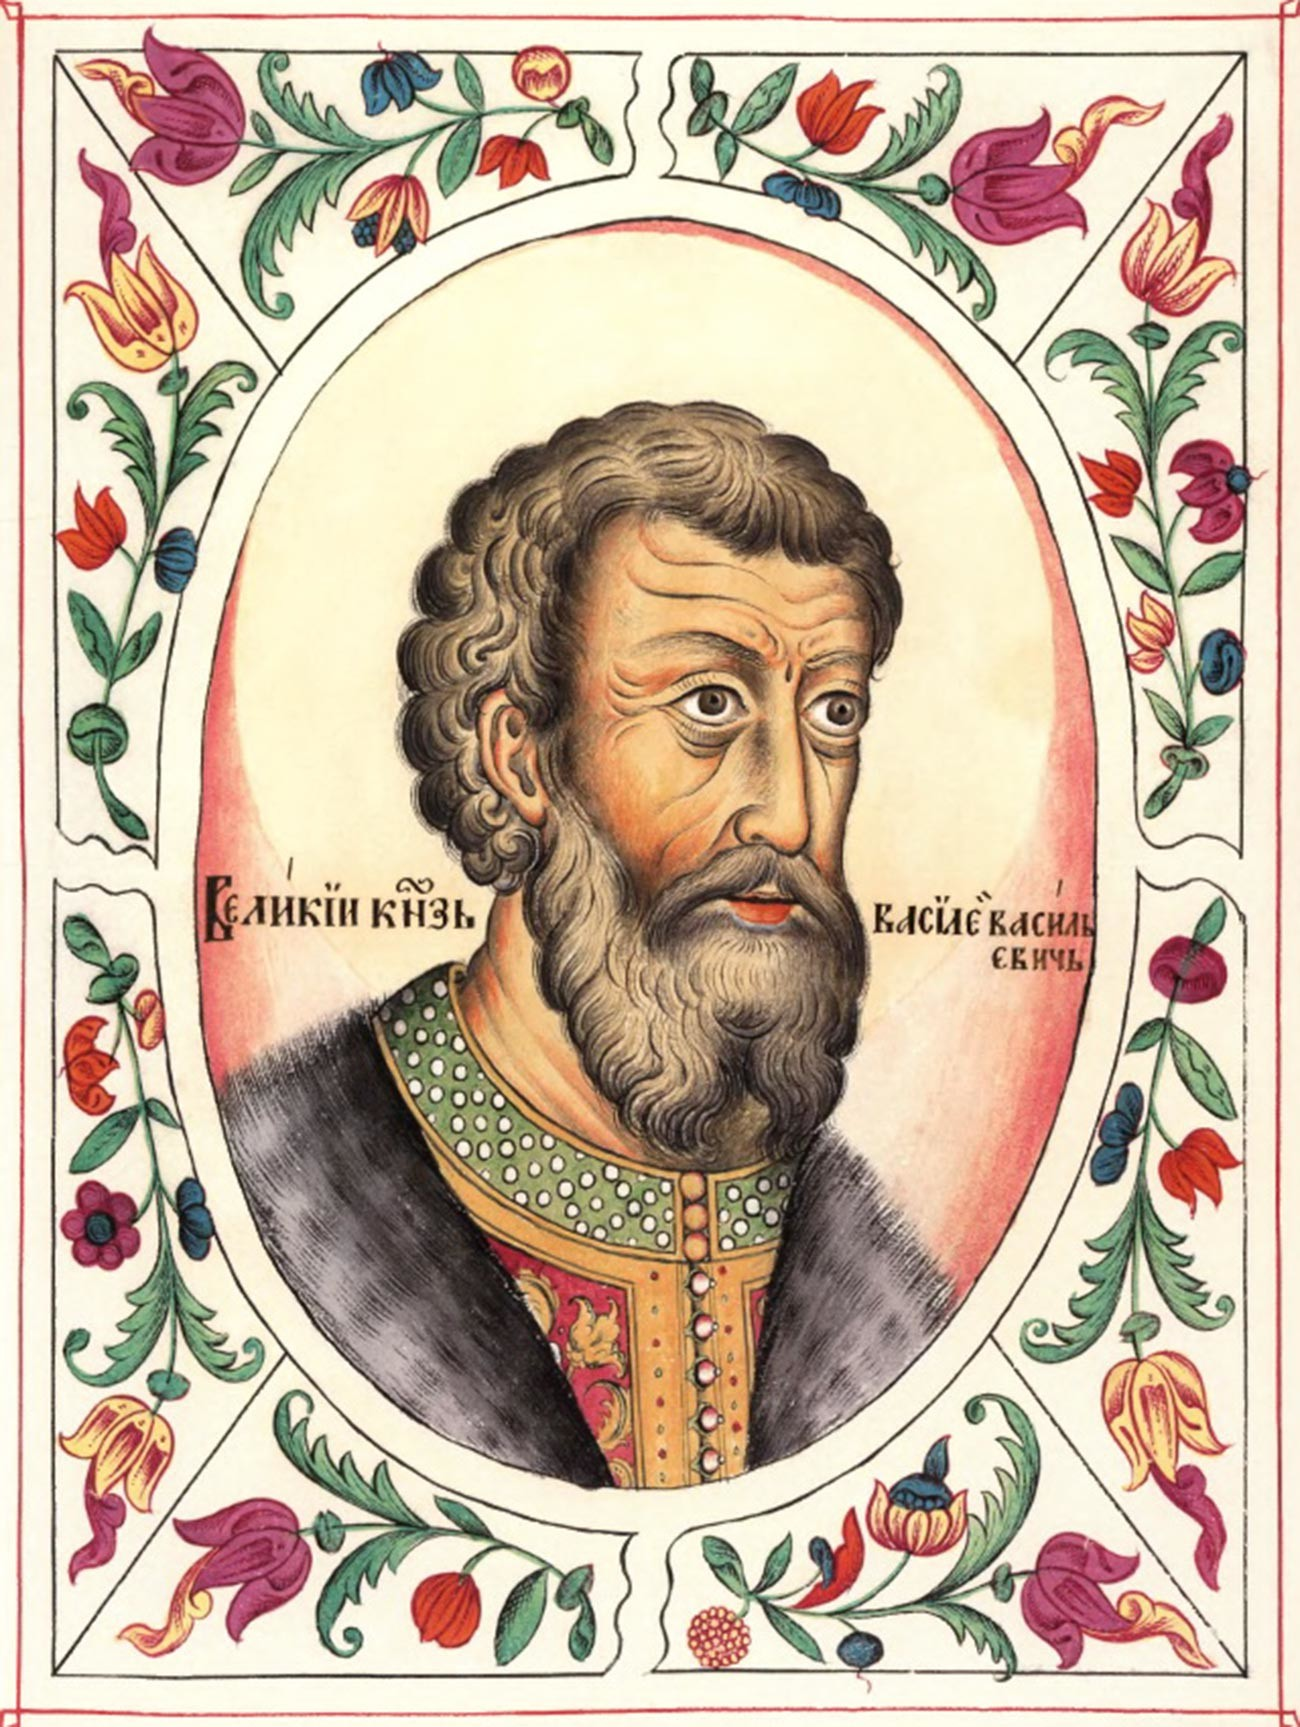 Vasily II of Moscow. This portrait is just a picture from a chronicle. We don't have any images of Vasily and don't know how he looked like.